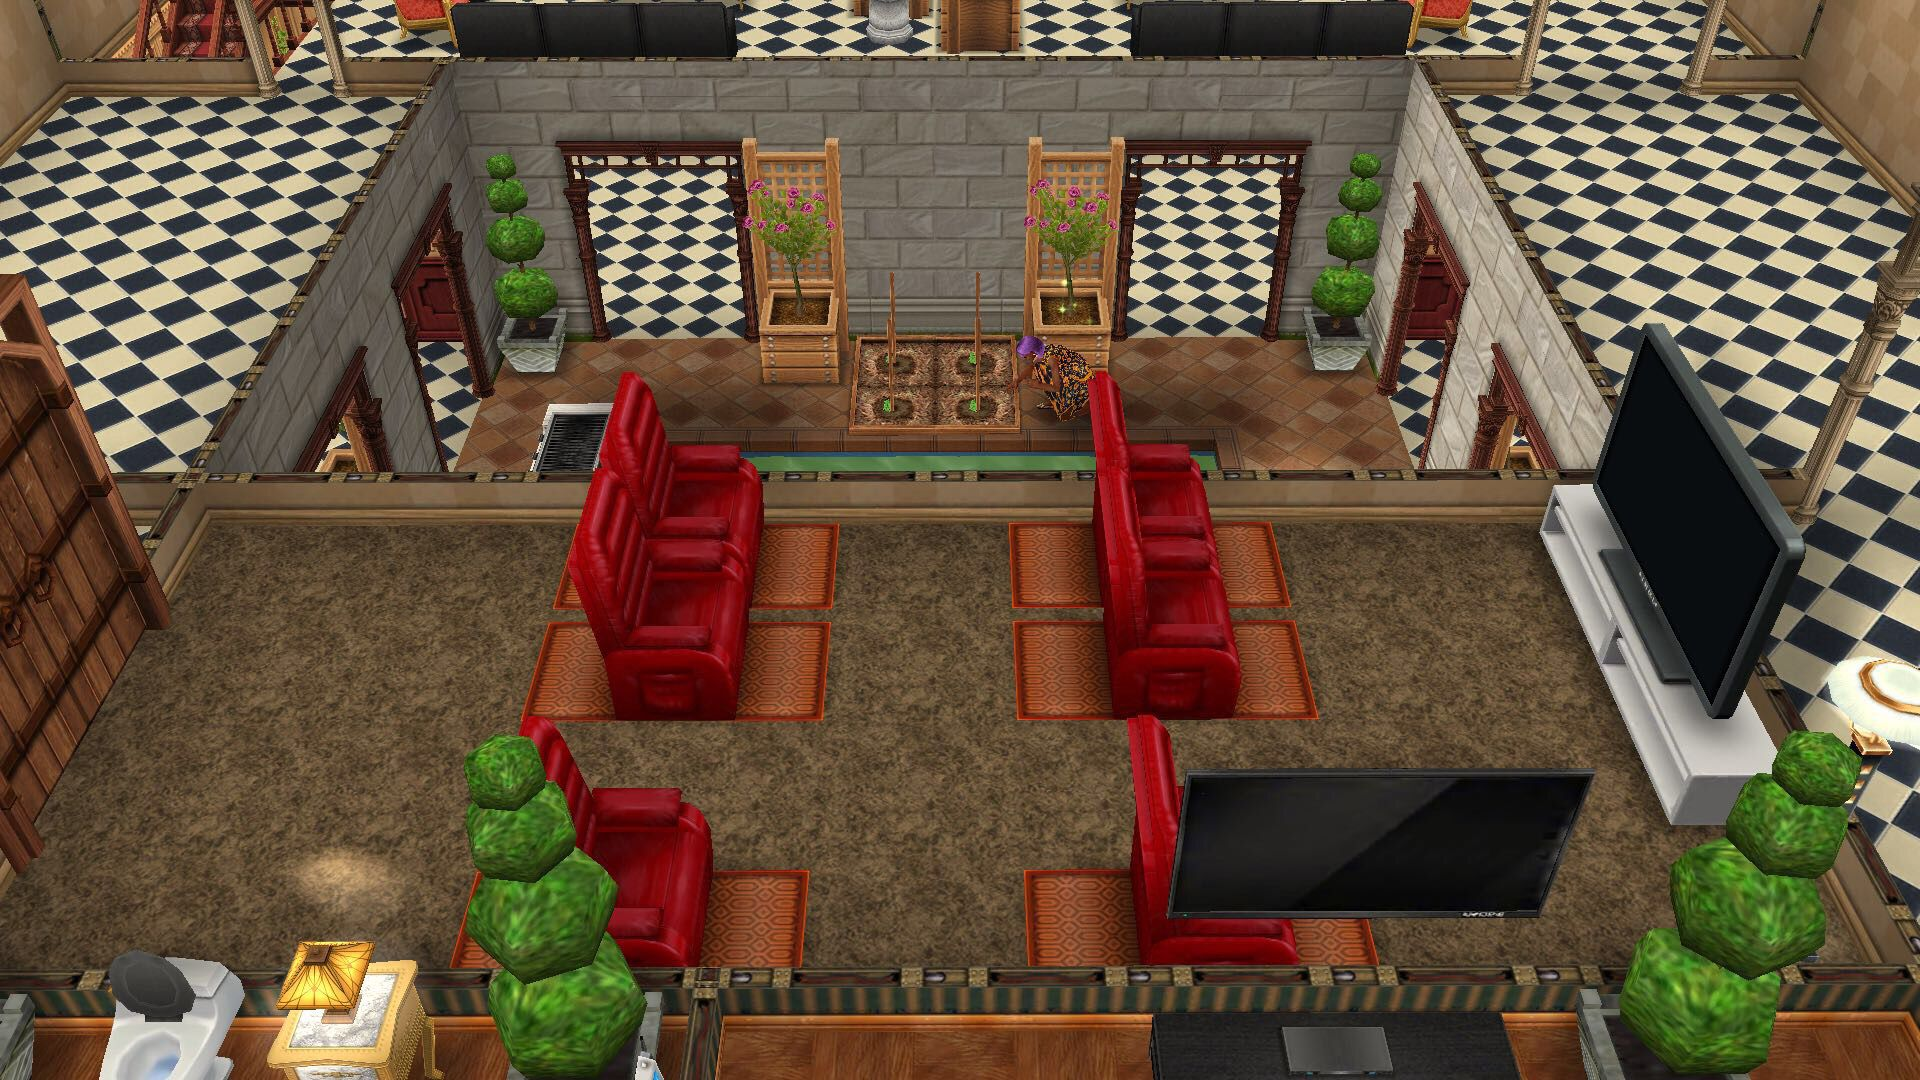 My Sims Free Play Fancy House 2nd floor family mini cinema room